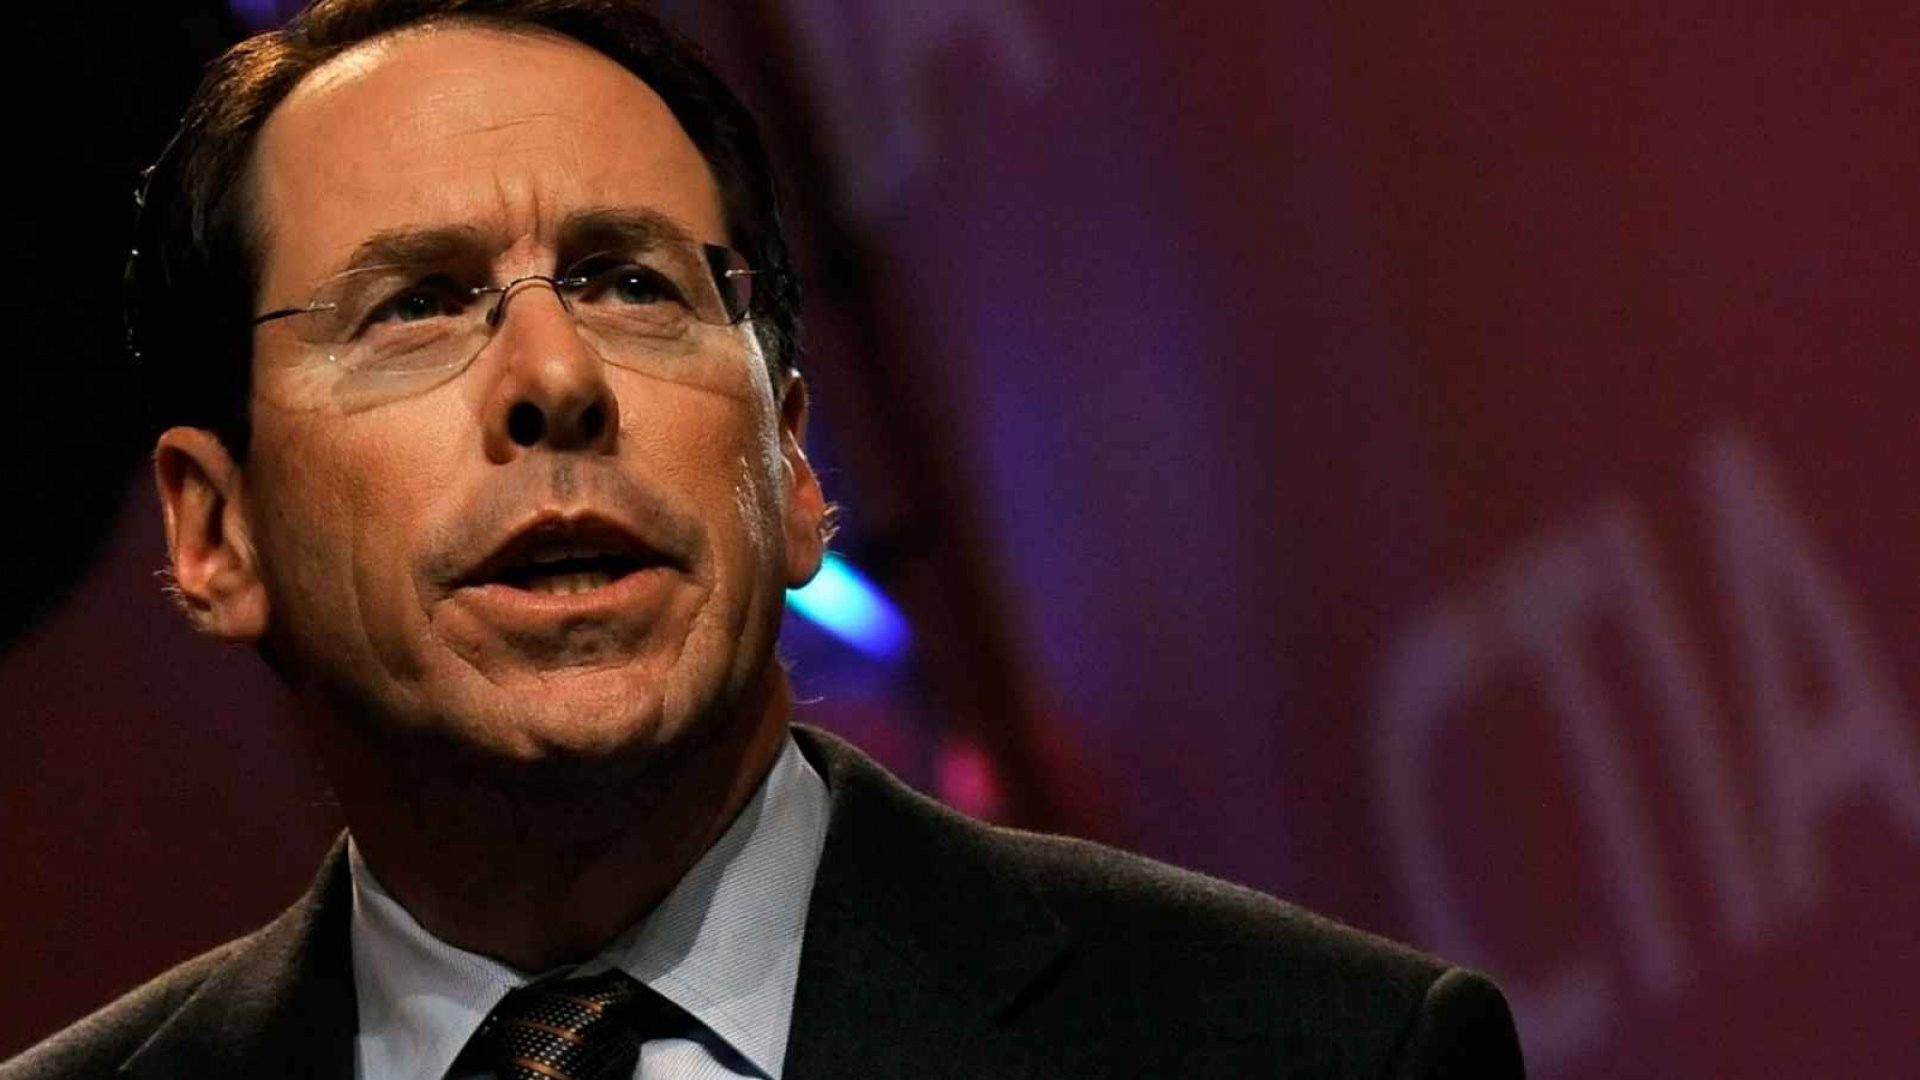 AT&T's Stephenson Shows Businesses Can't Solve Diversity Unless the CEO Gets Involved